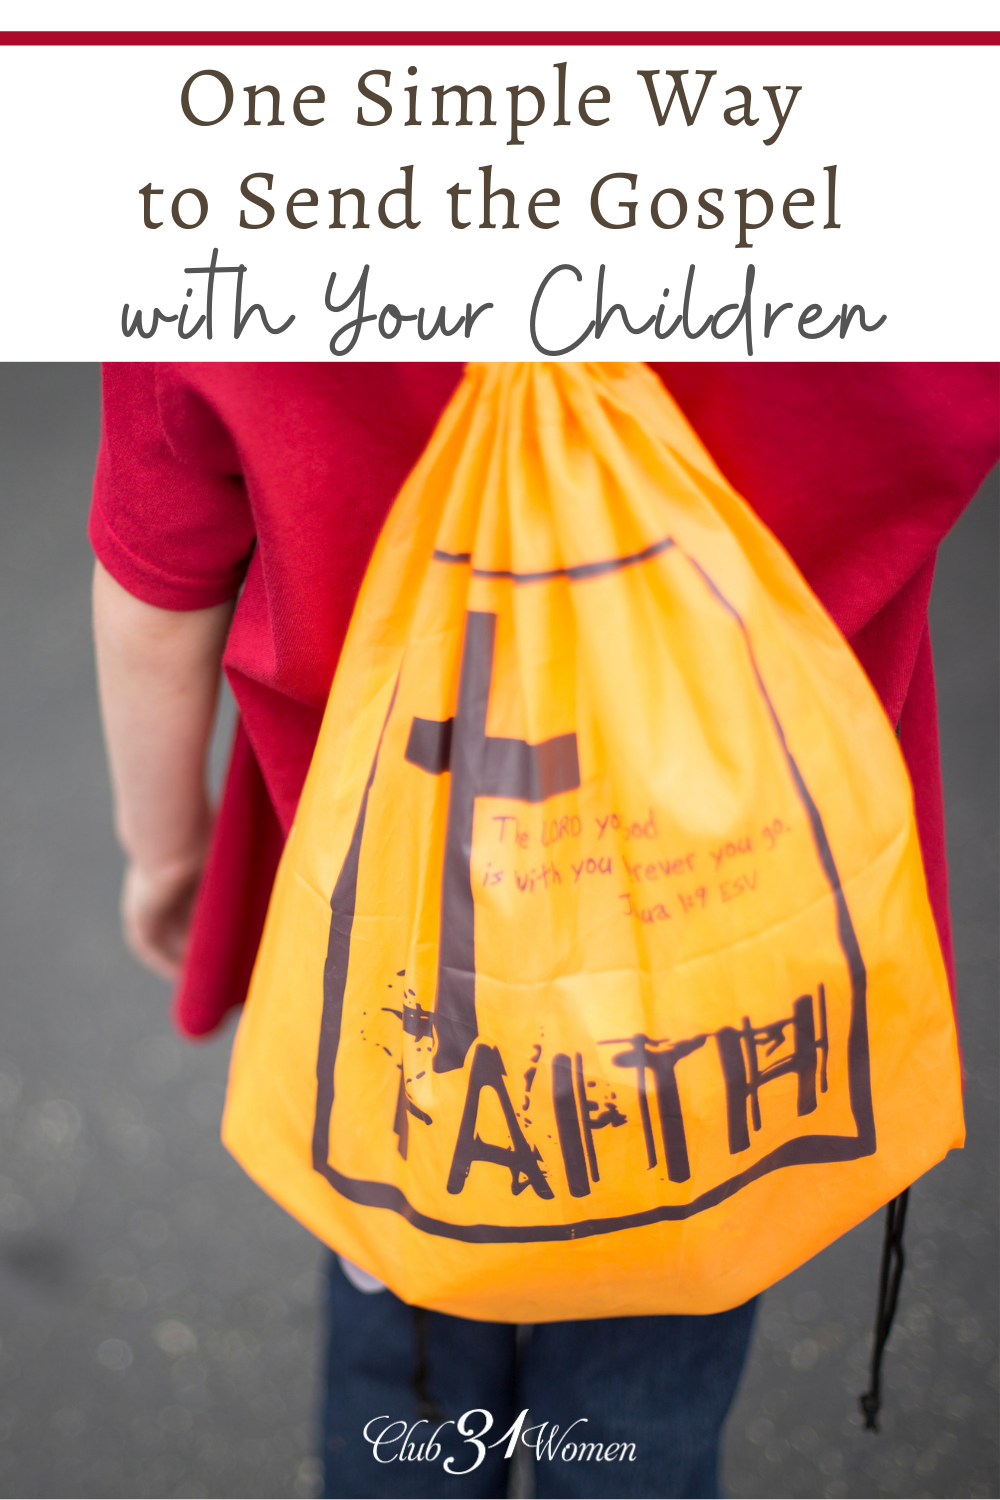 Maybe you're struggling to find a practical way for your kids to share the gospel. This is an excellent way to help them spread God's love! via @Club31Women